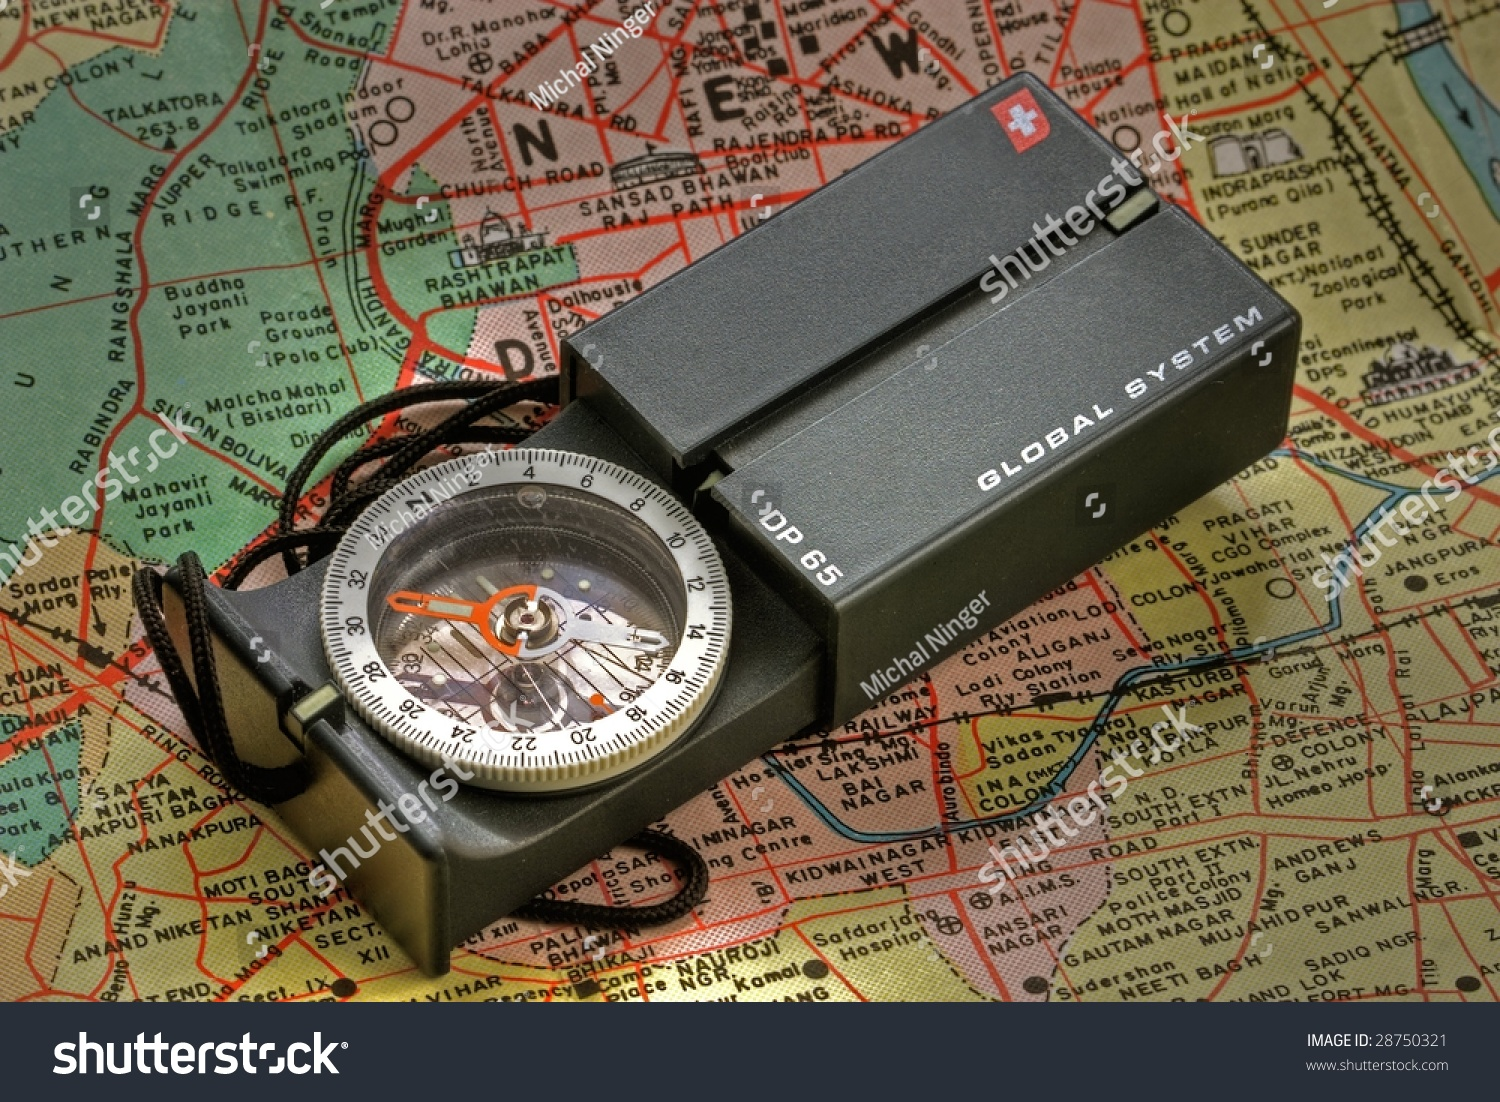 compass with map close-up